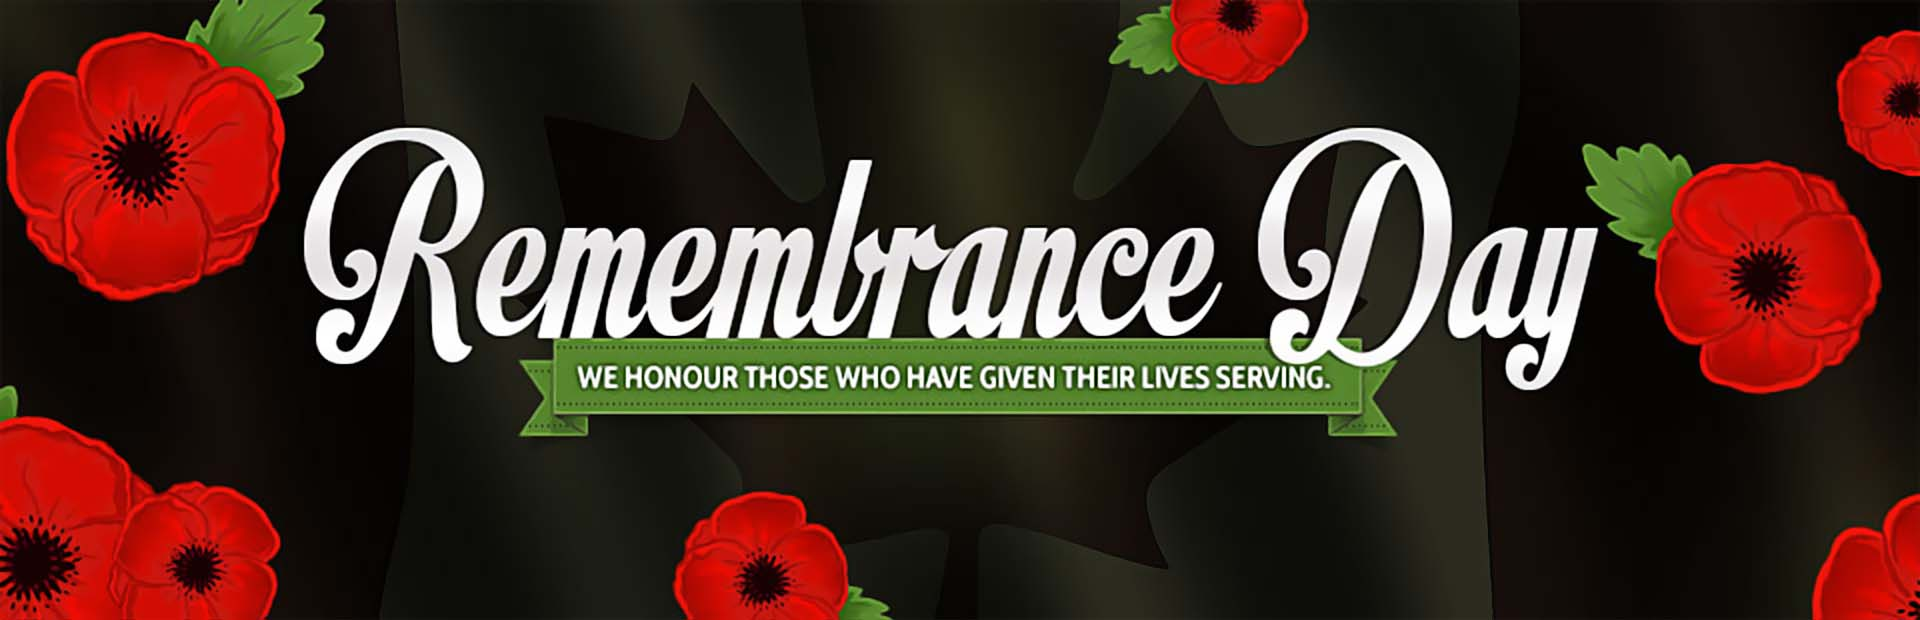 Remembrance Day: We honour those who have given their lives serving.